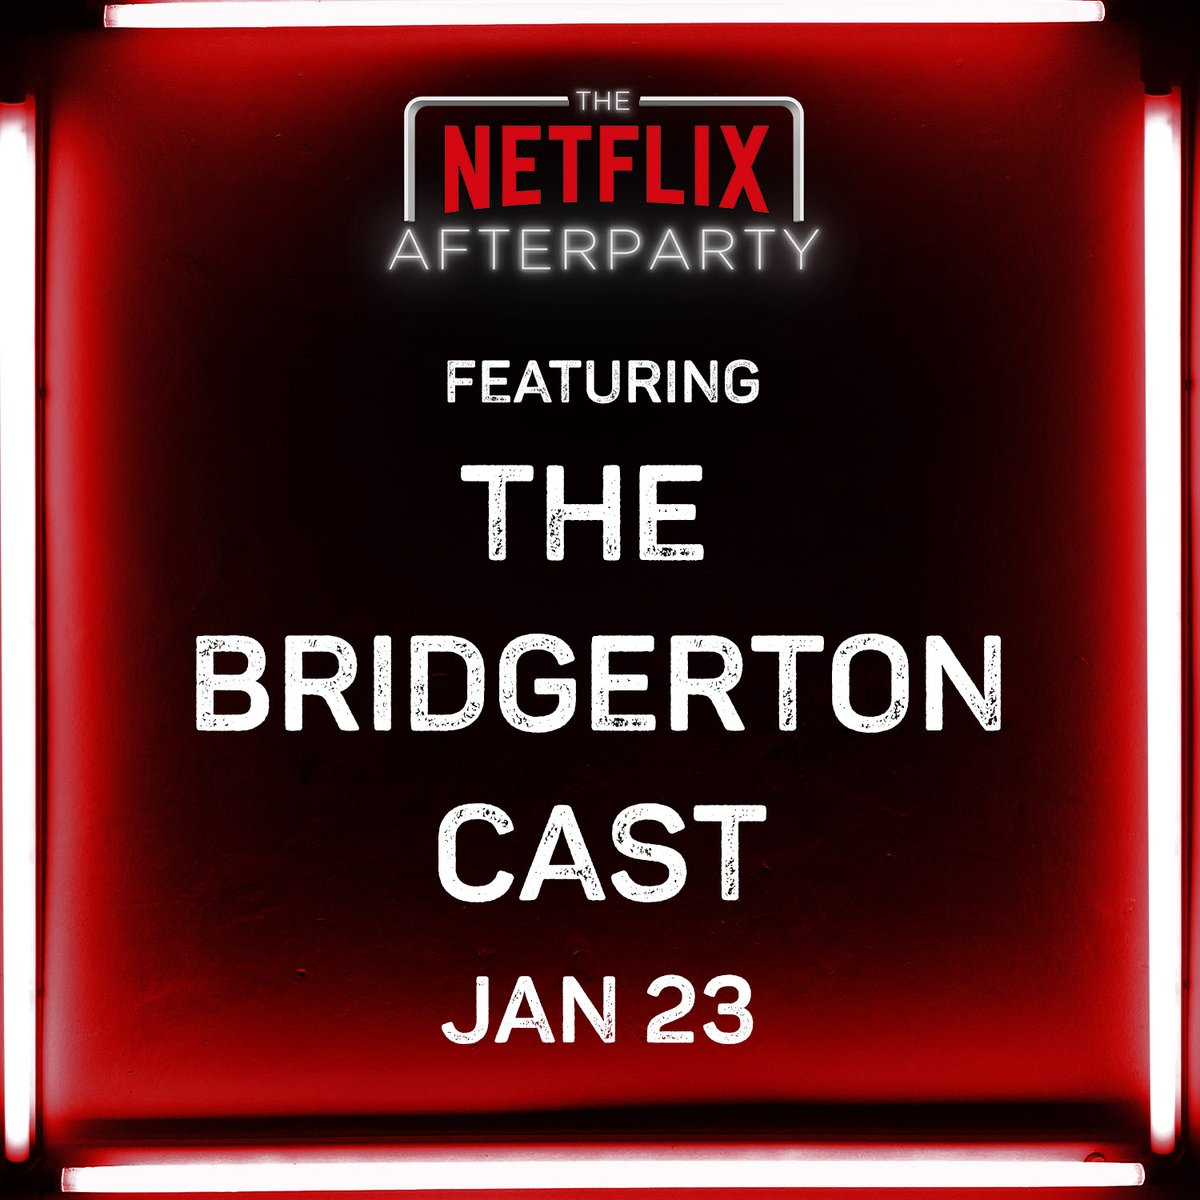 Indeed! An all-new episode of The Netflix Afterparty with the cast of @bridgerton is premiering Jan 23 on Netflix.